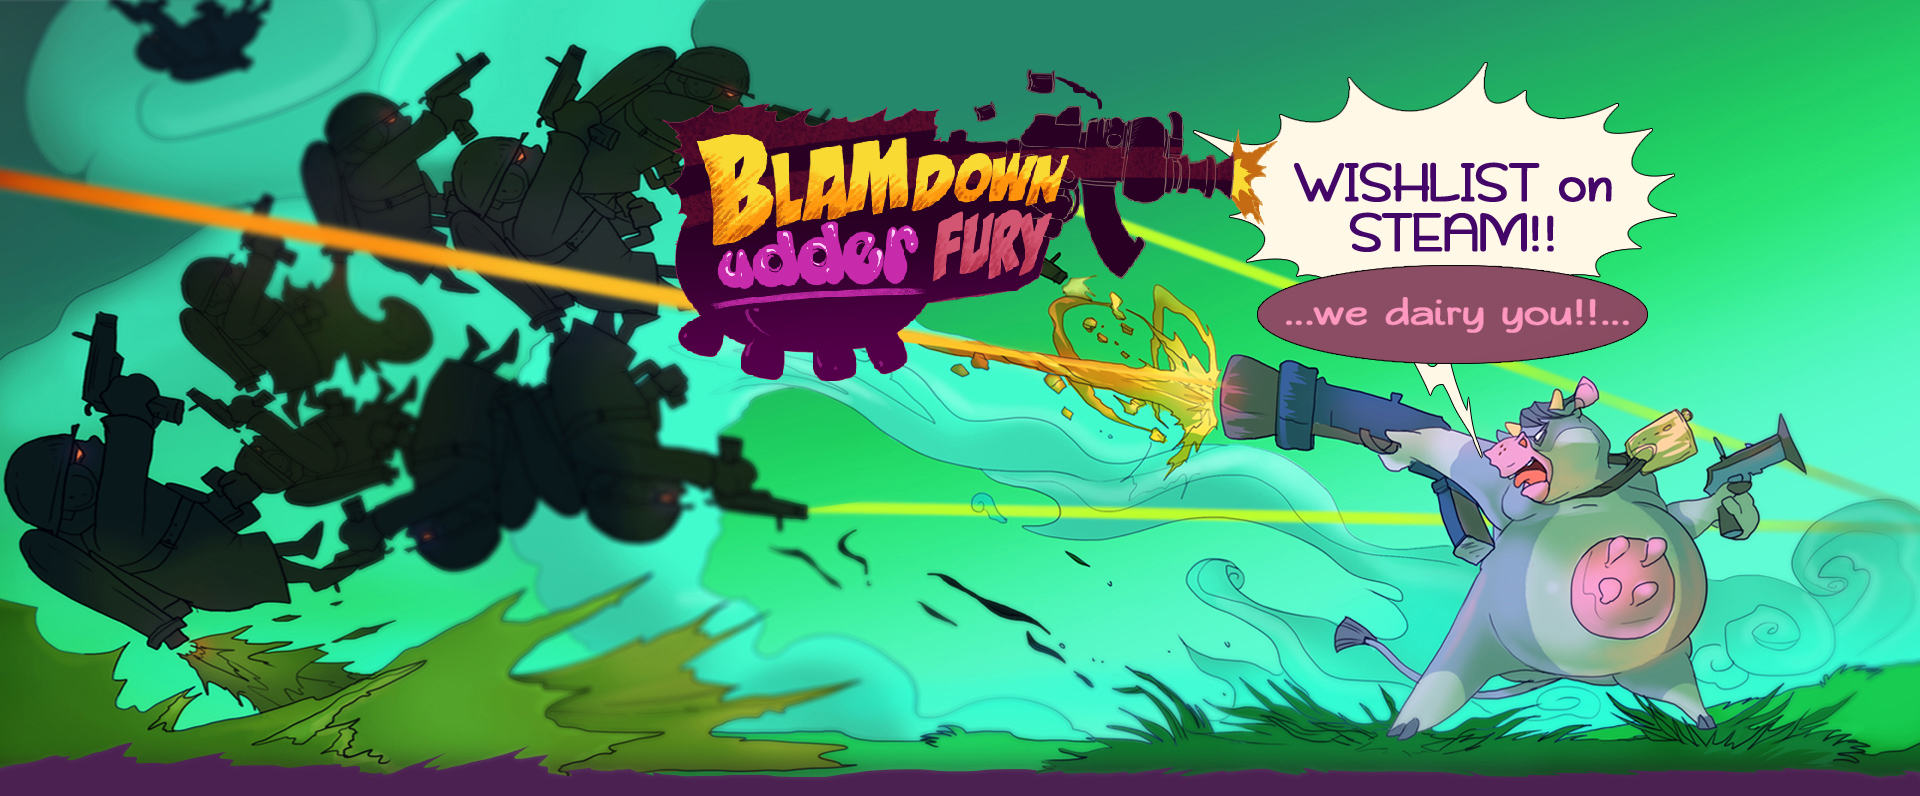 Blamdown Udder Fury - Prototype